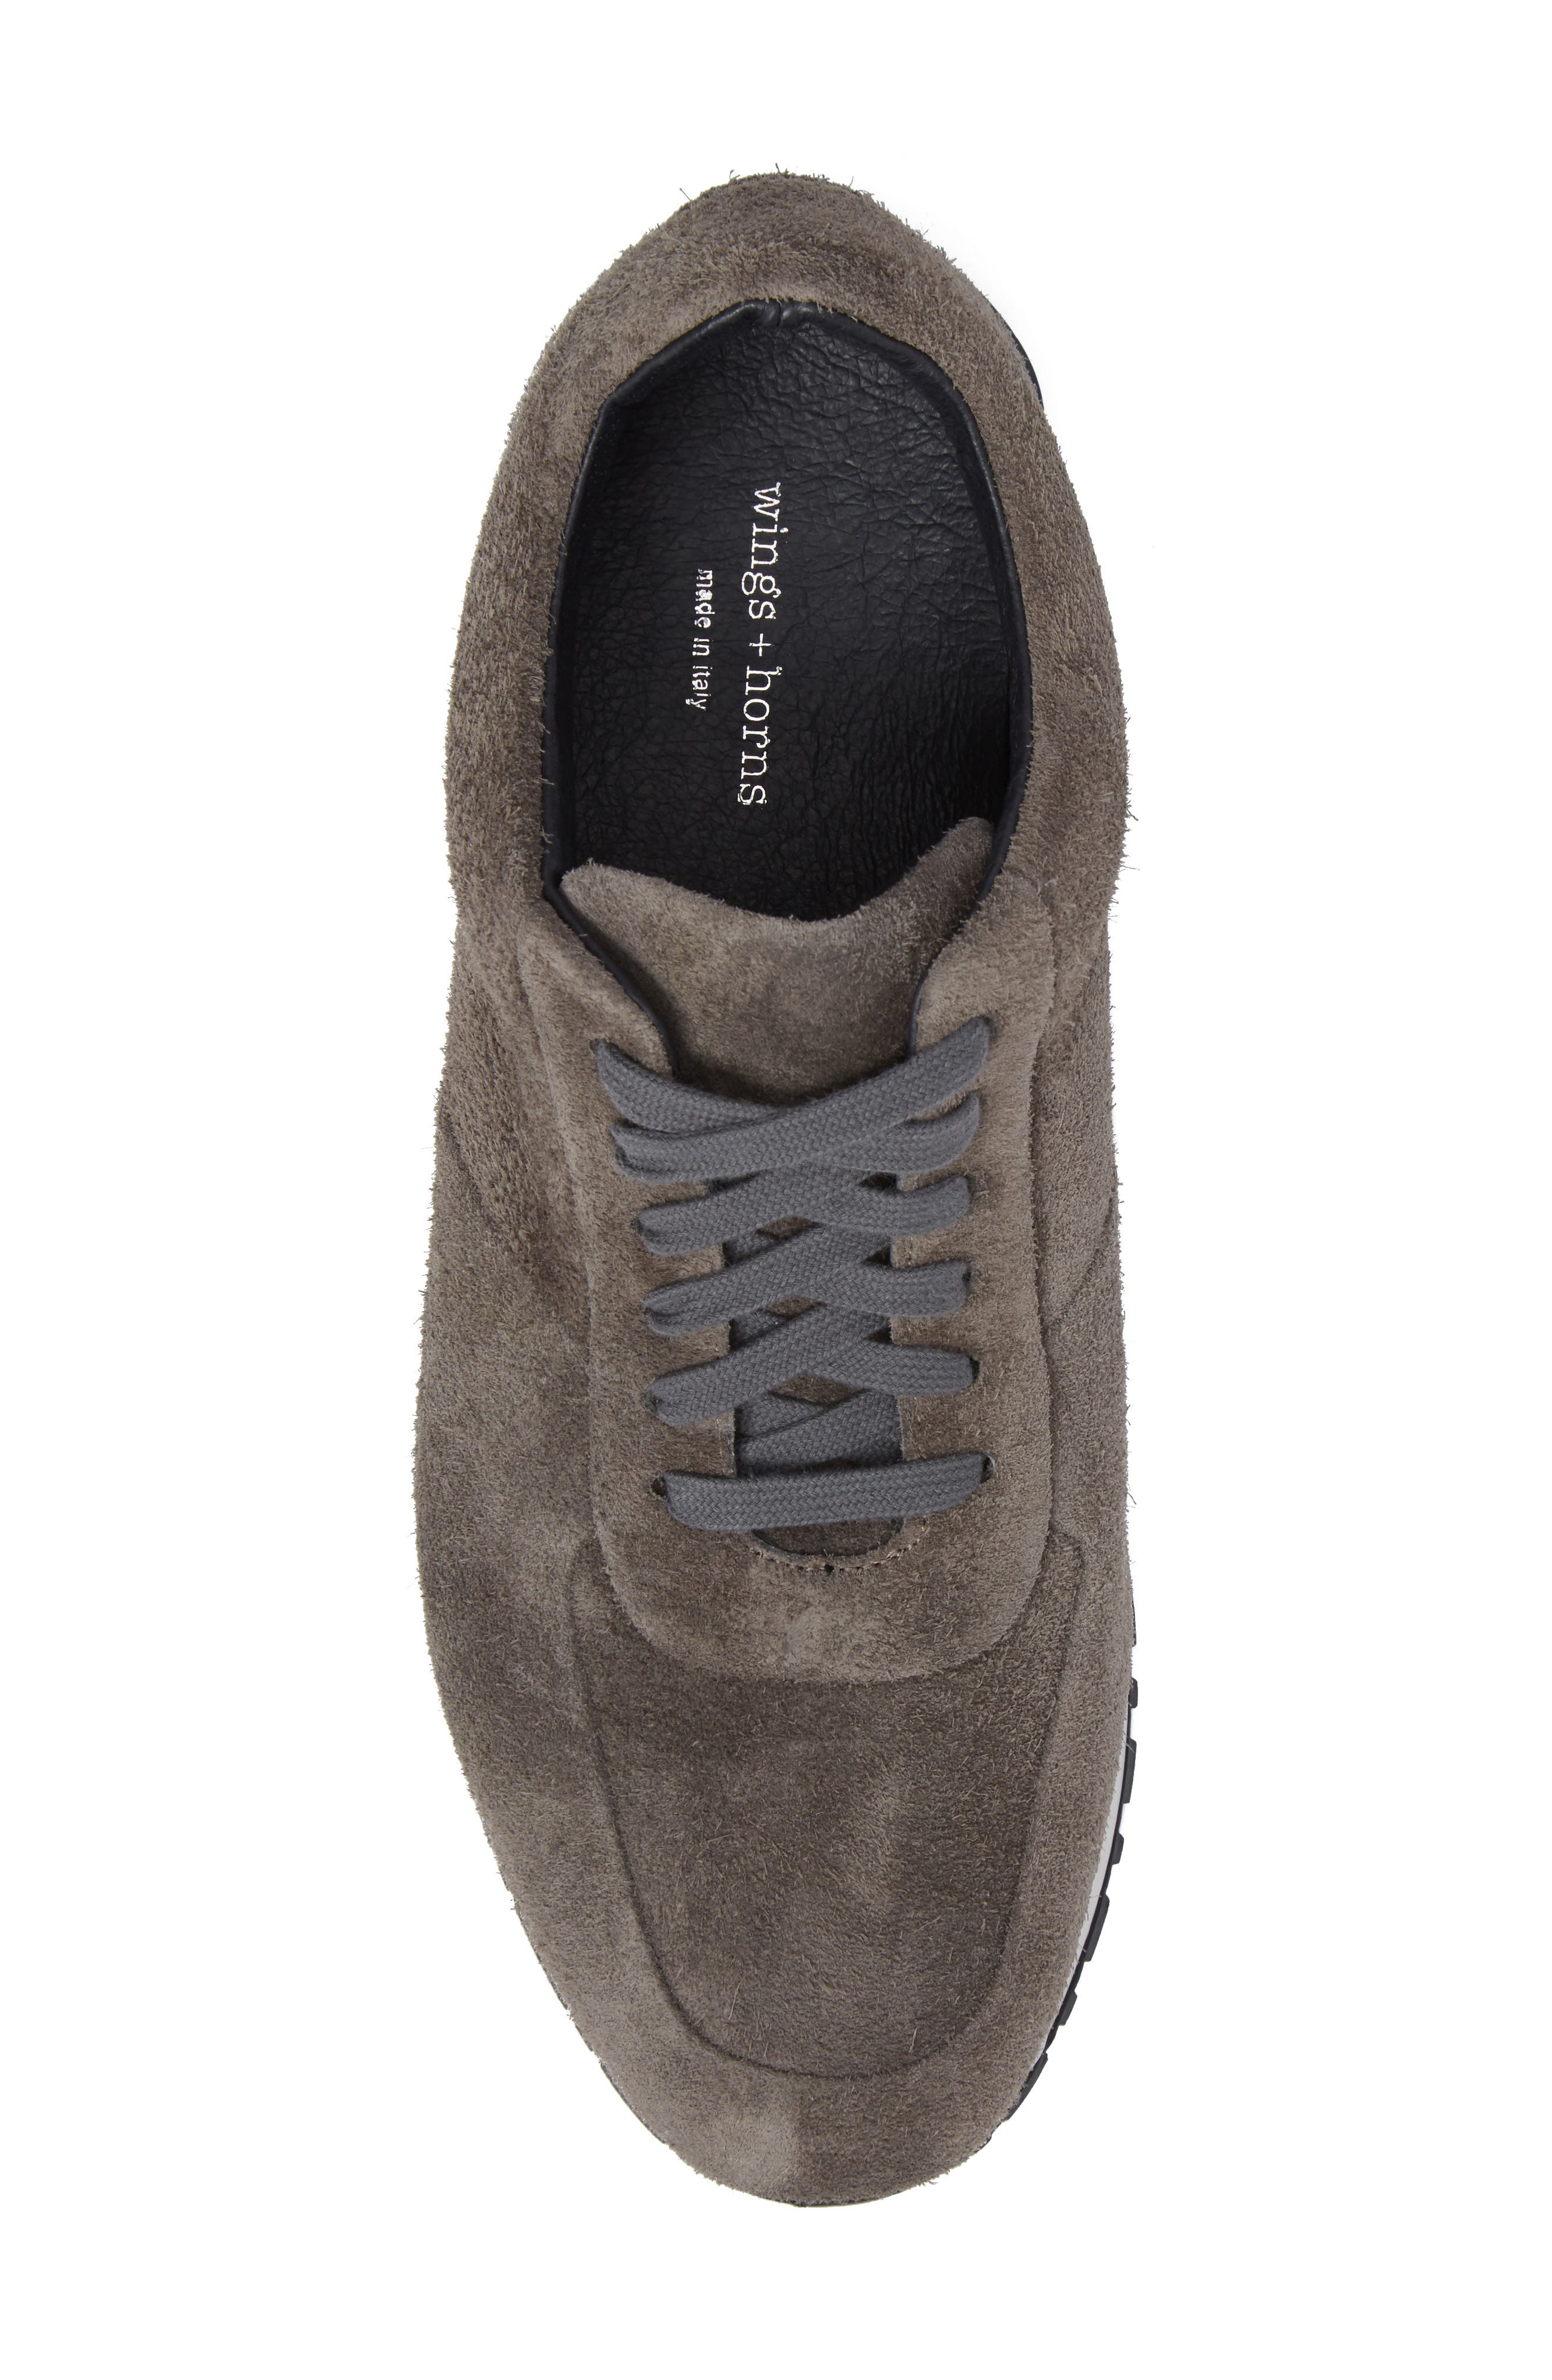 Hairy Sneaker,                             Alternate thumbnail 5, color,                             Grey Suede